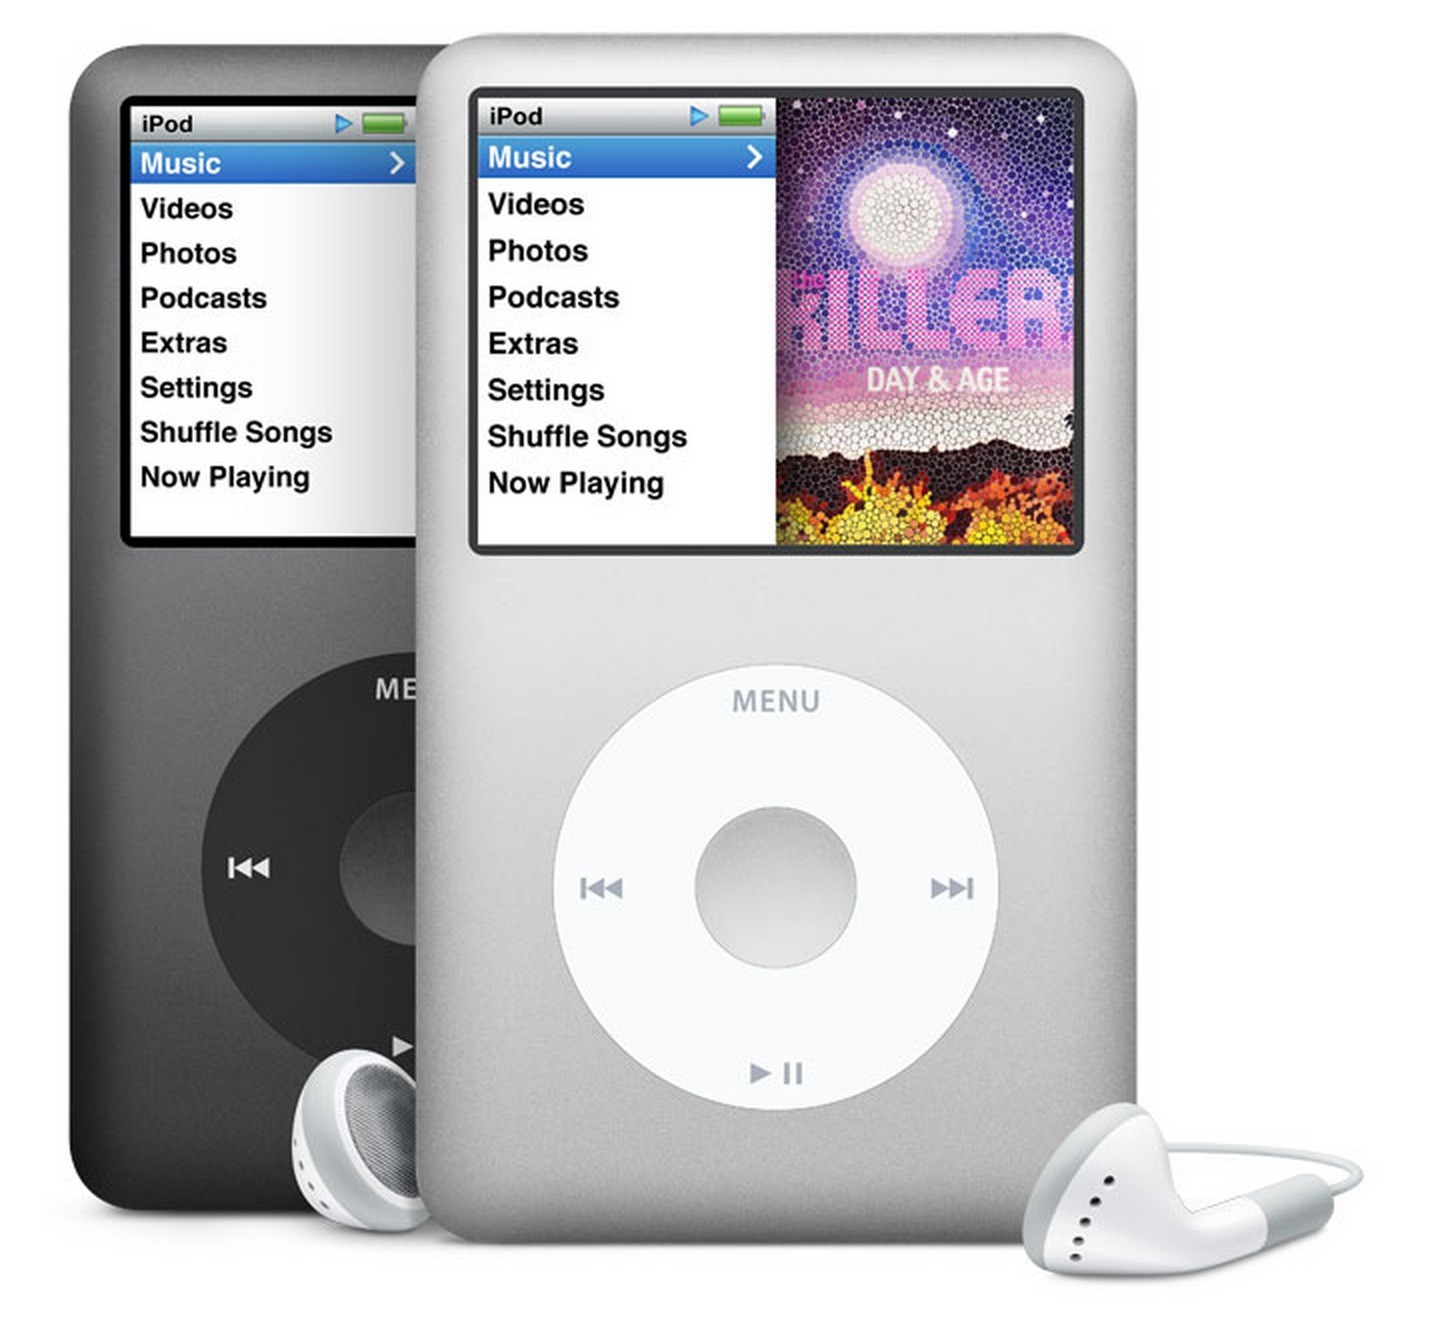 Apple Removed the iPod Classic from Their Store – Video